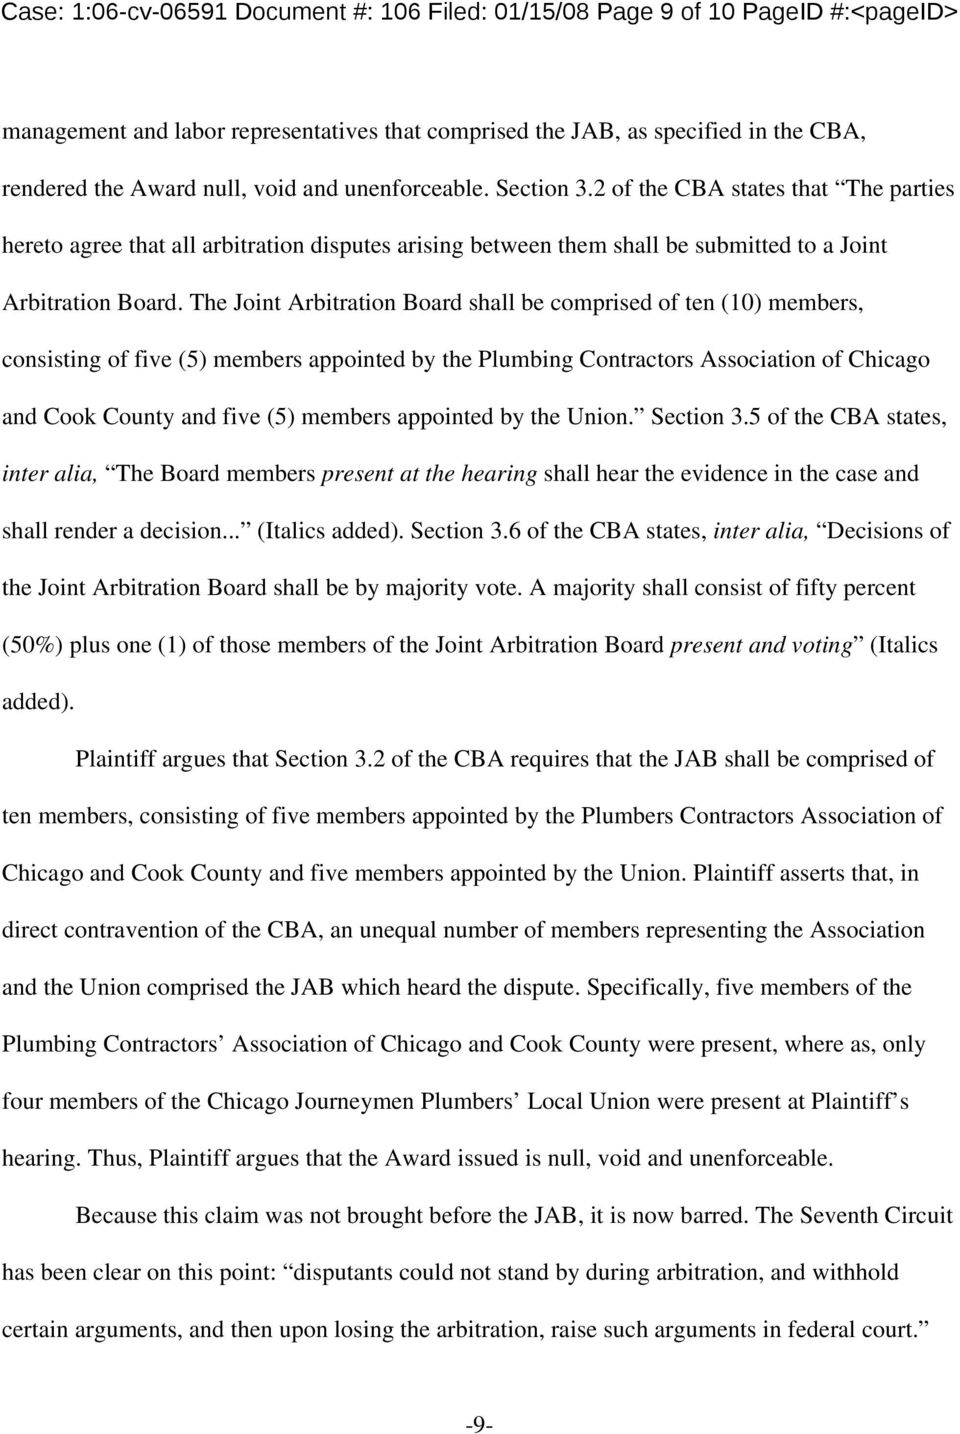 The Joint Arbitration Board shall be comprised of ten (10 members, consisting of five (5 members appointed by the Plumbing Contractors Association of Chicago and Cook County and five (5 members